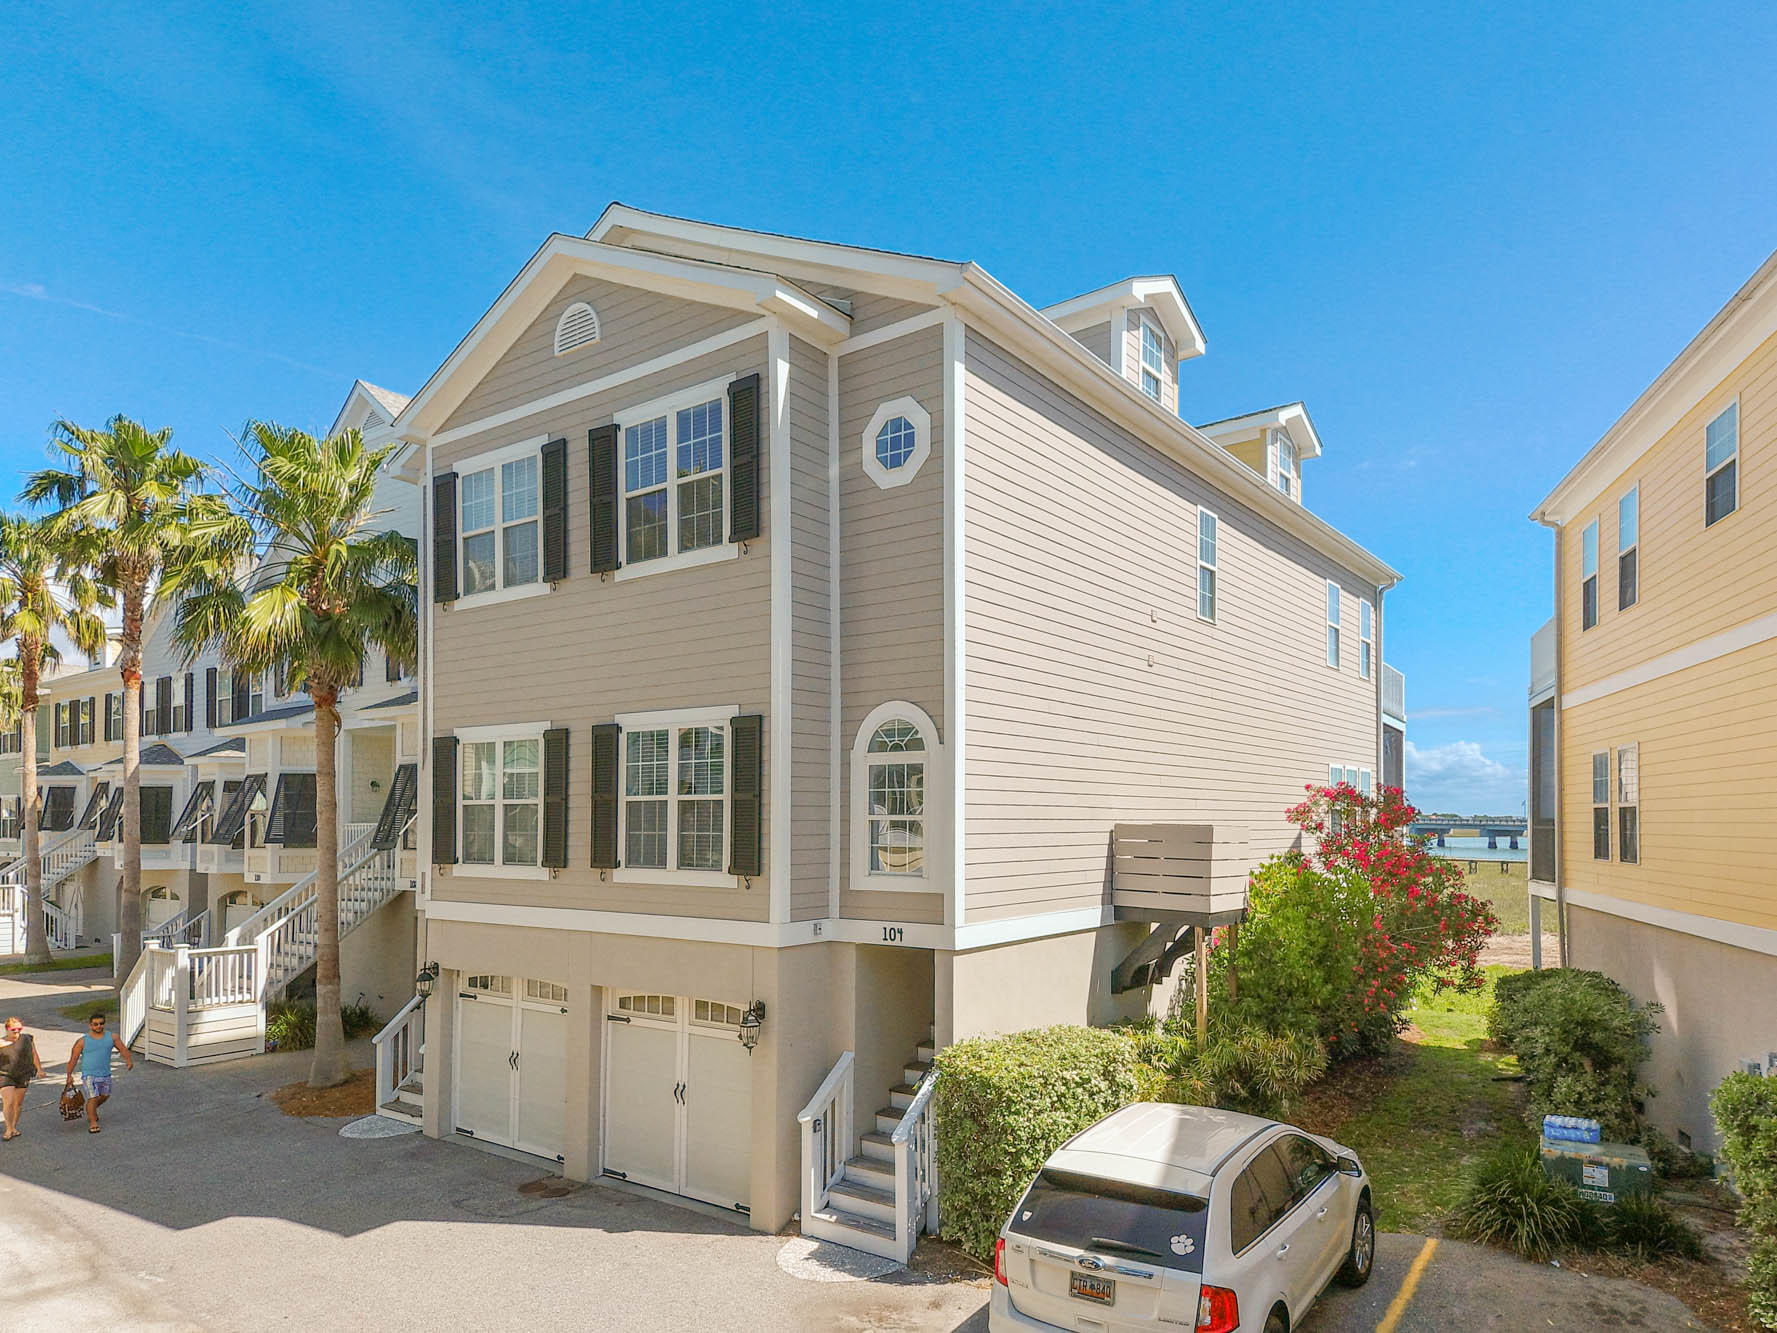 Waters Edge Homes For Sale - 104 2nd, Folly Beach, SC - 15